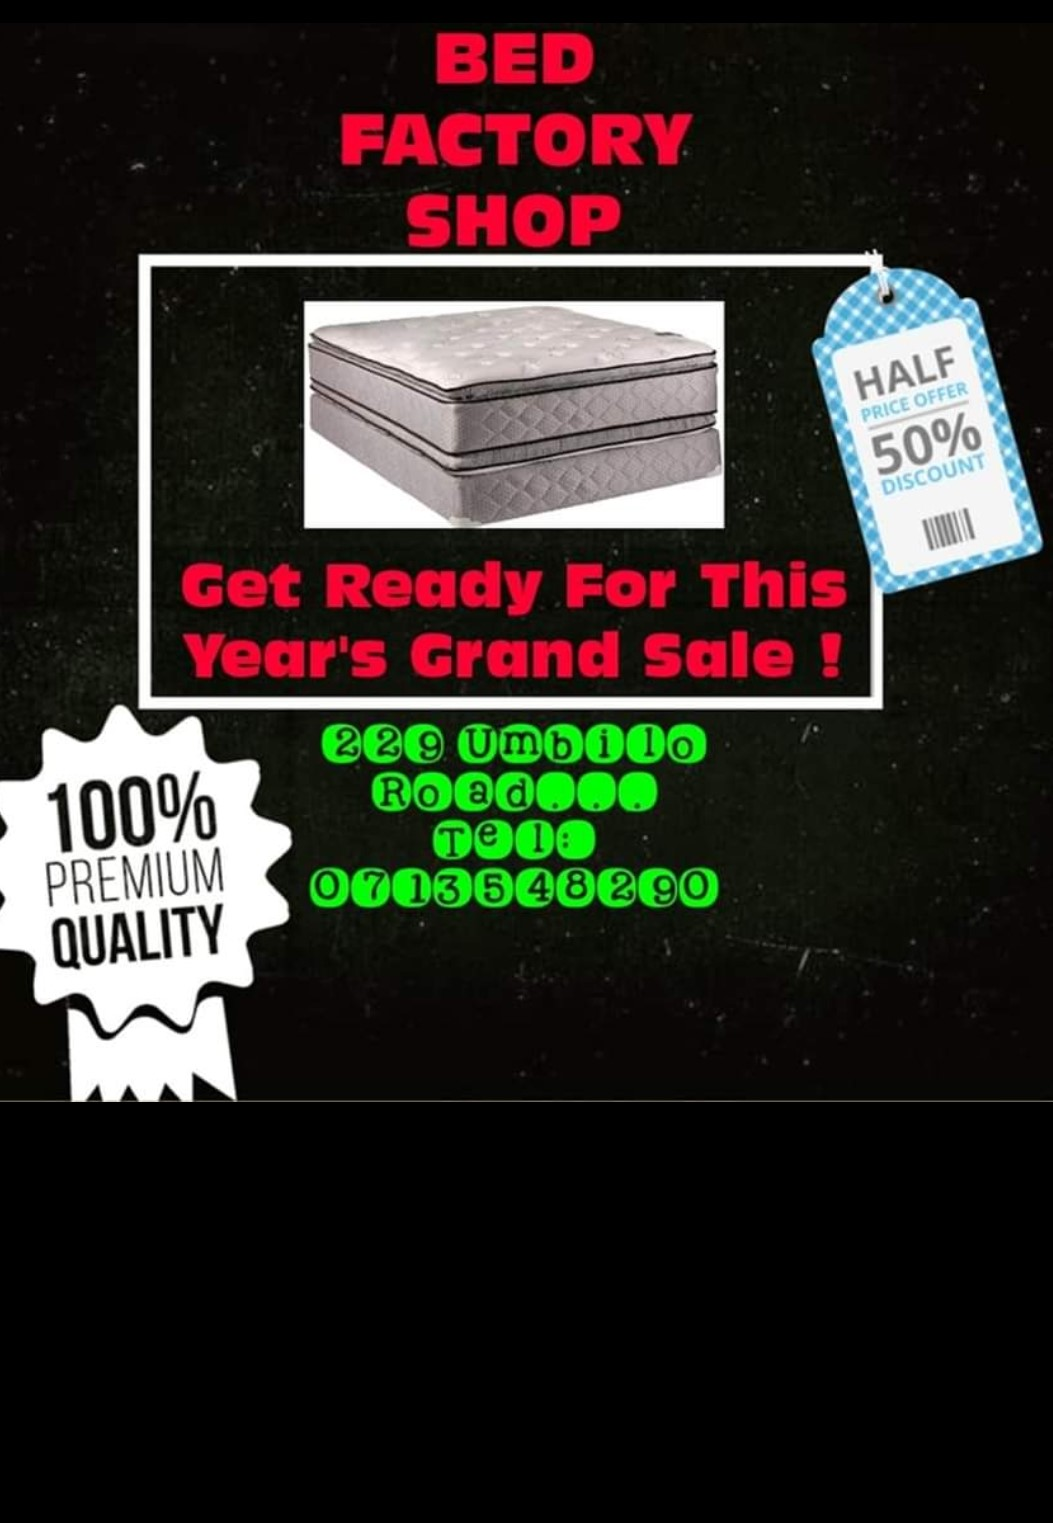 Beds at discounted prices